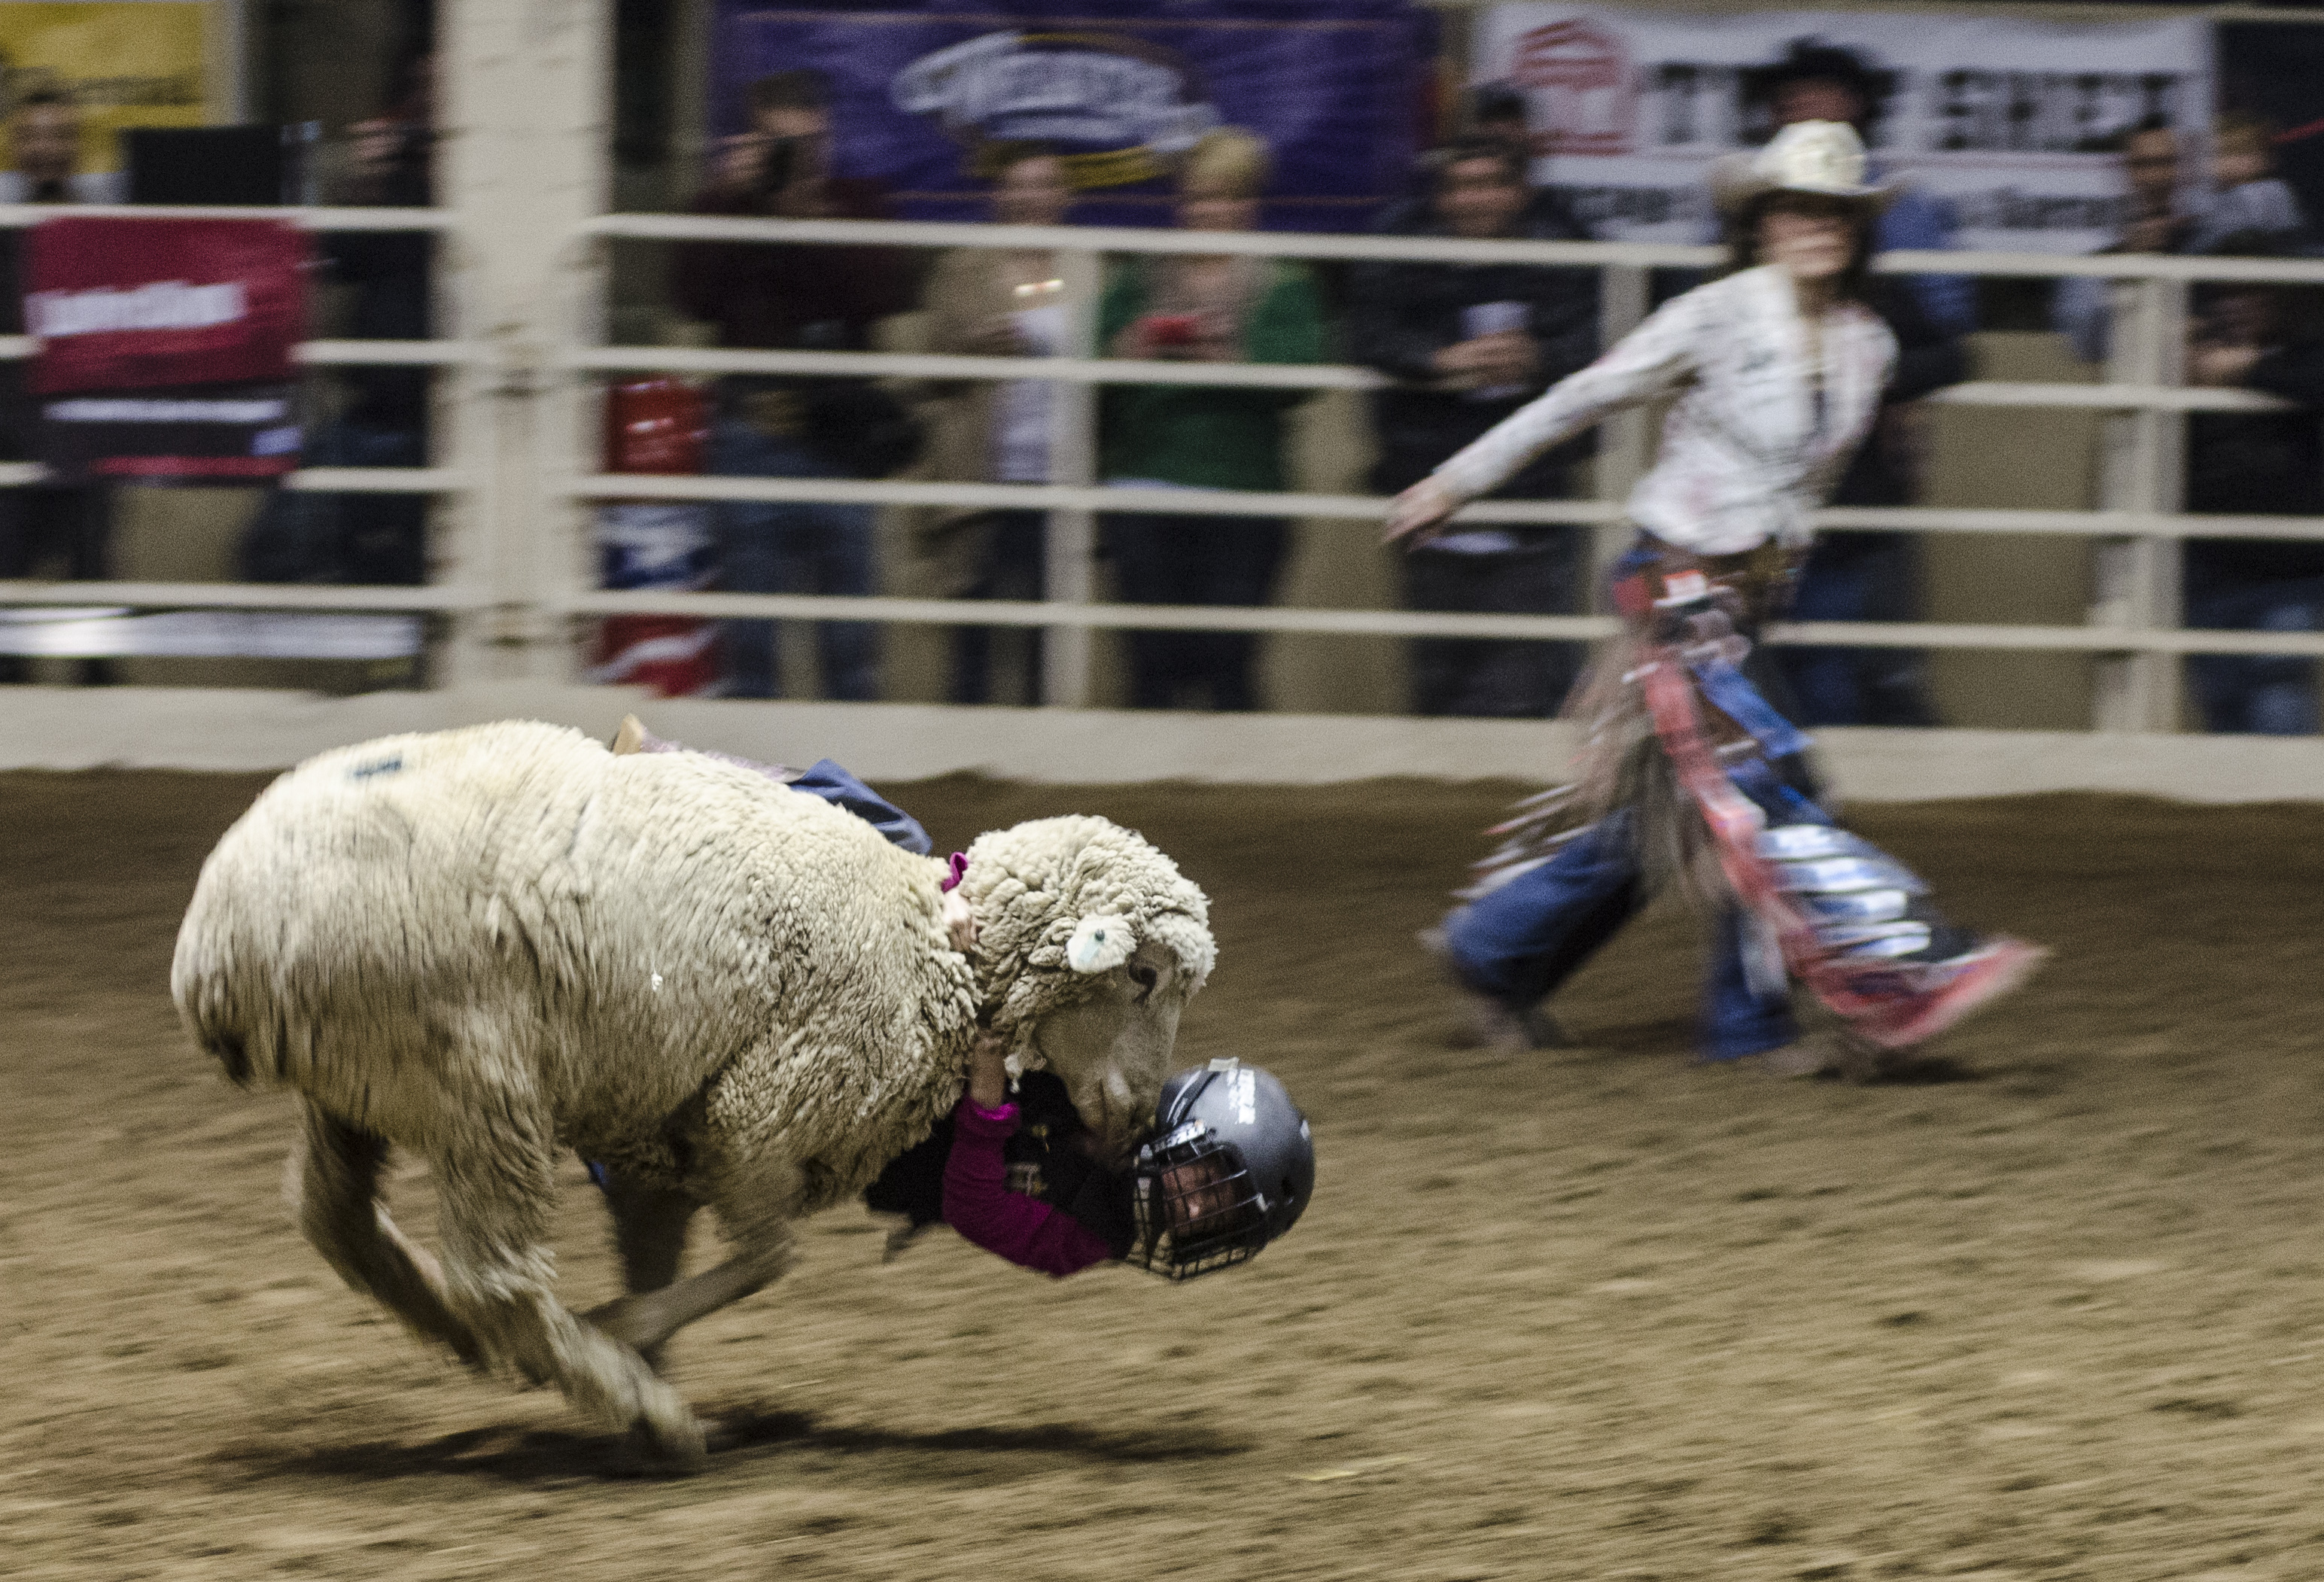 Photo: 6-year-old mutton buster Sydney Babi